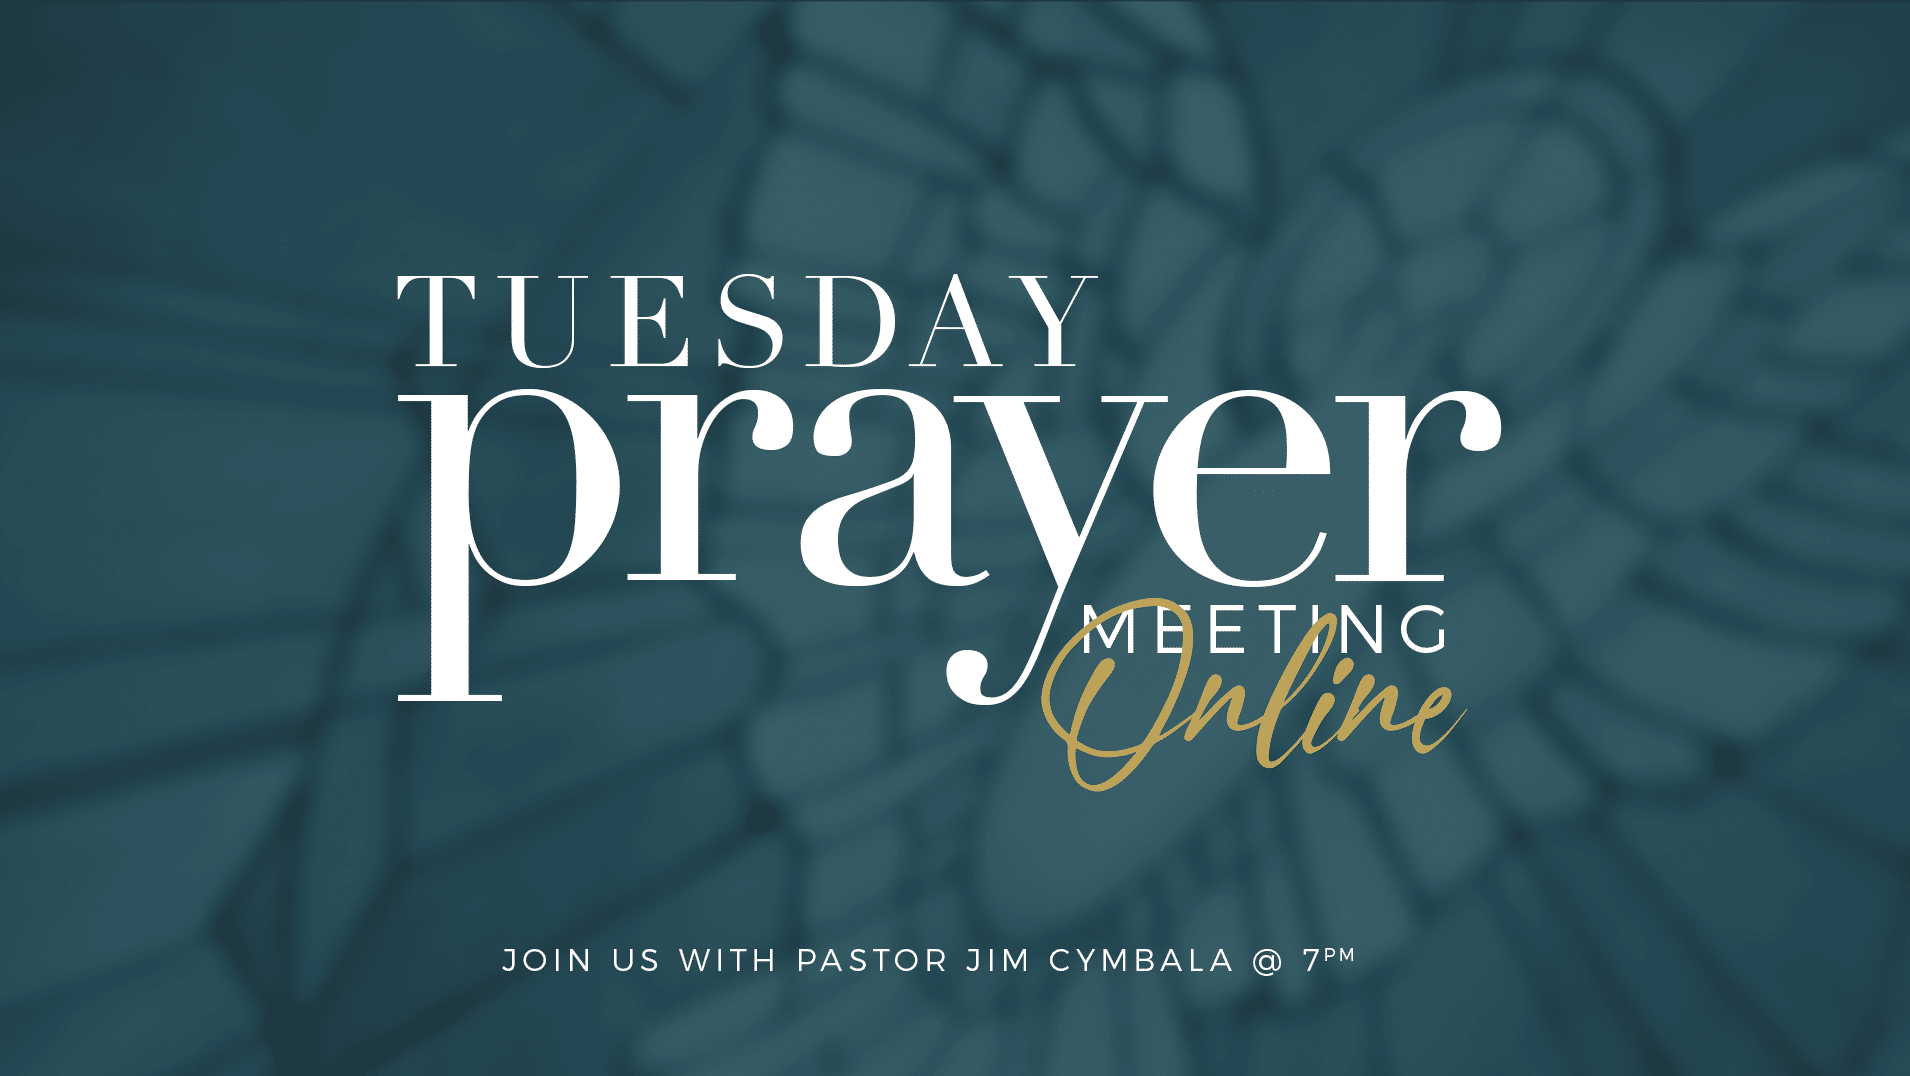 Tuesday Prayer Meetings